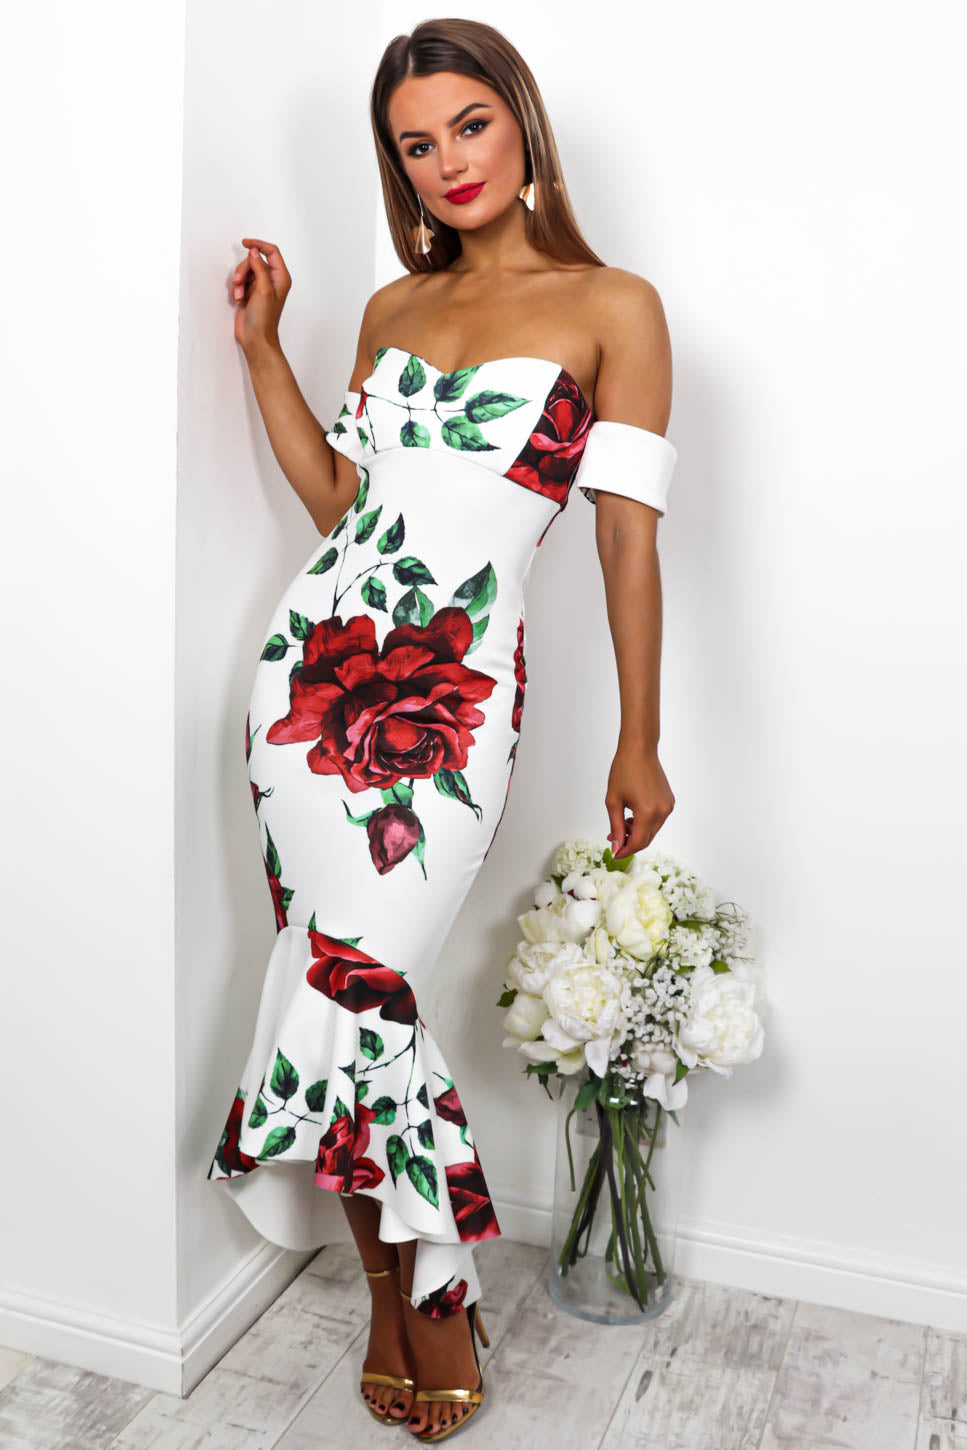 Rose To The Top - Maxi Dress In WHITE/FLORAL